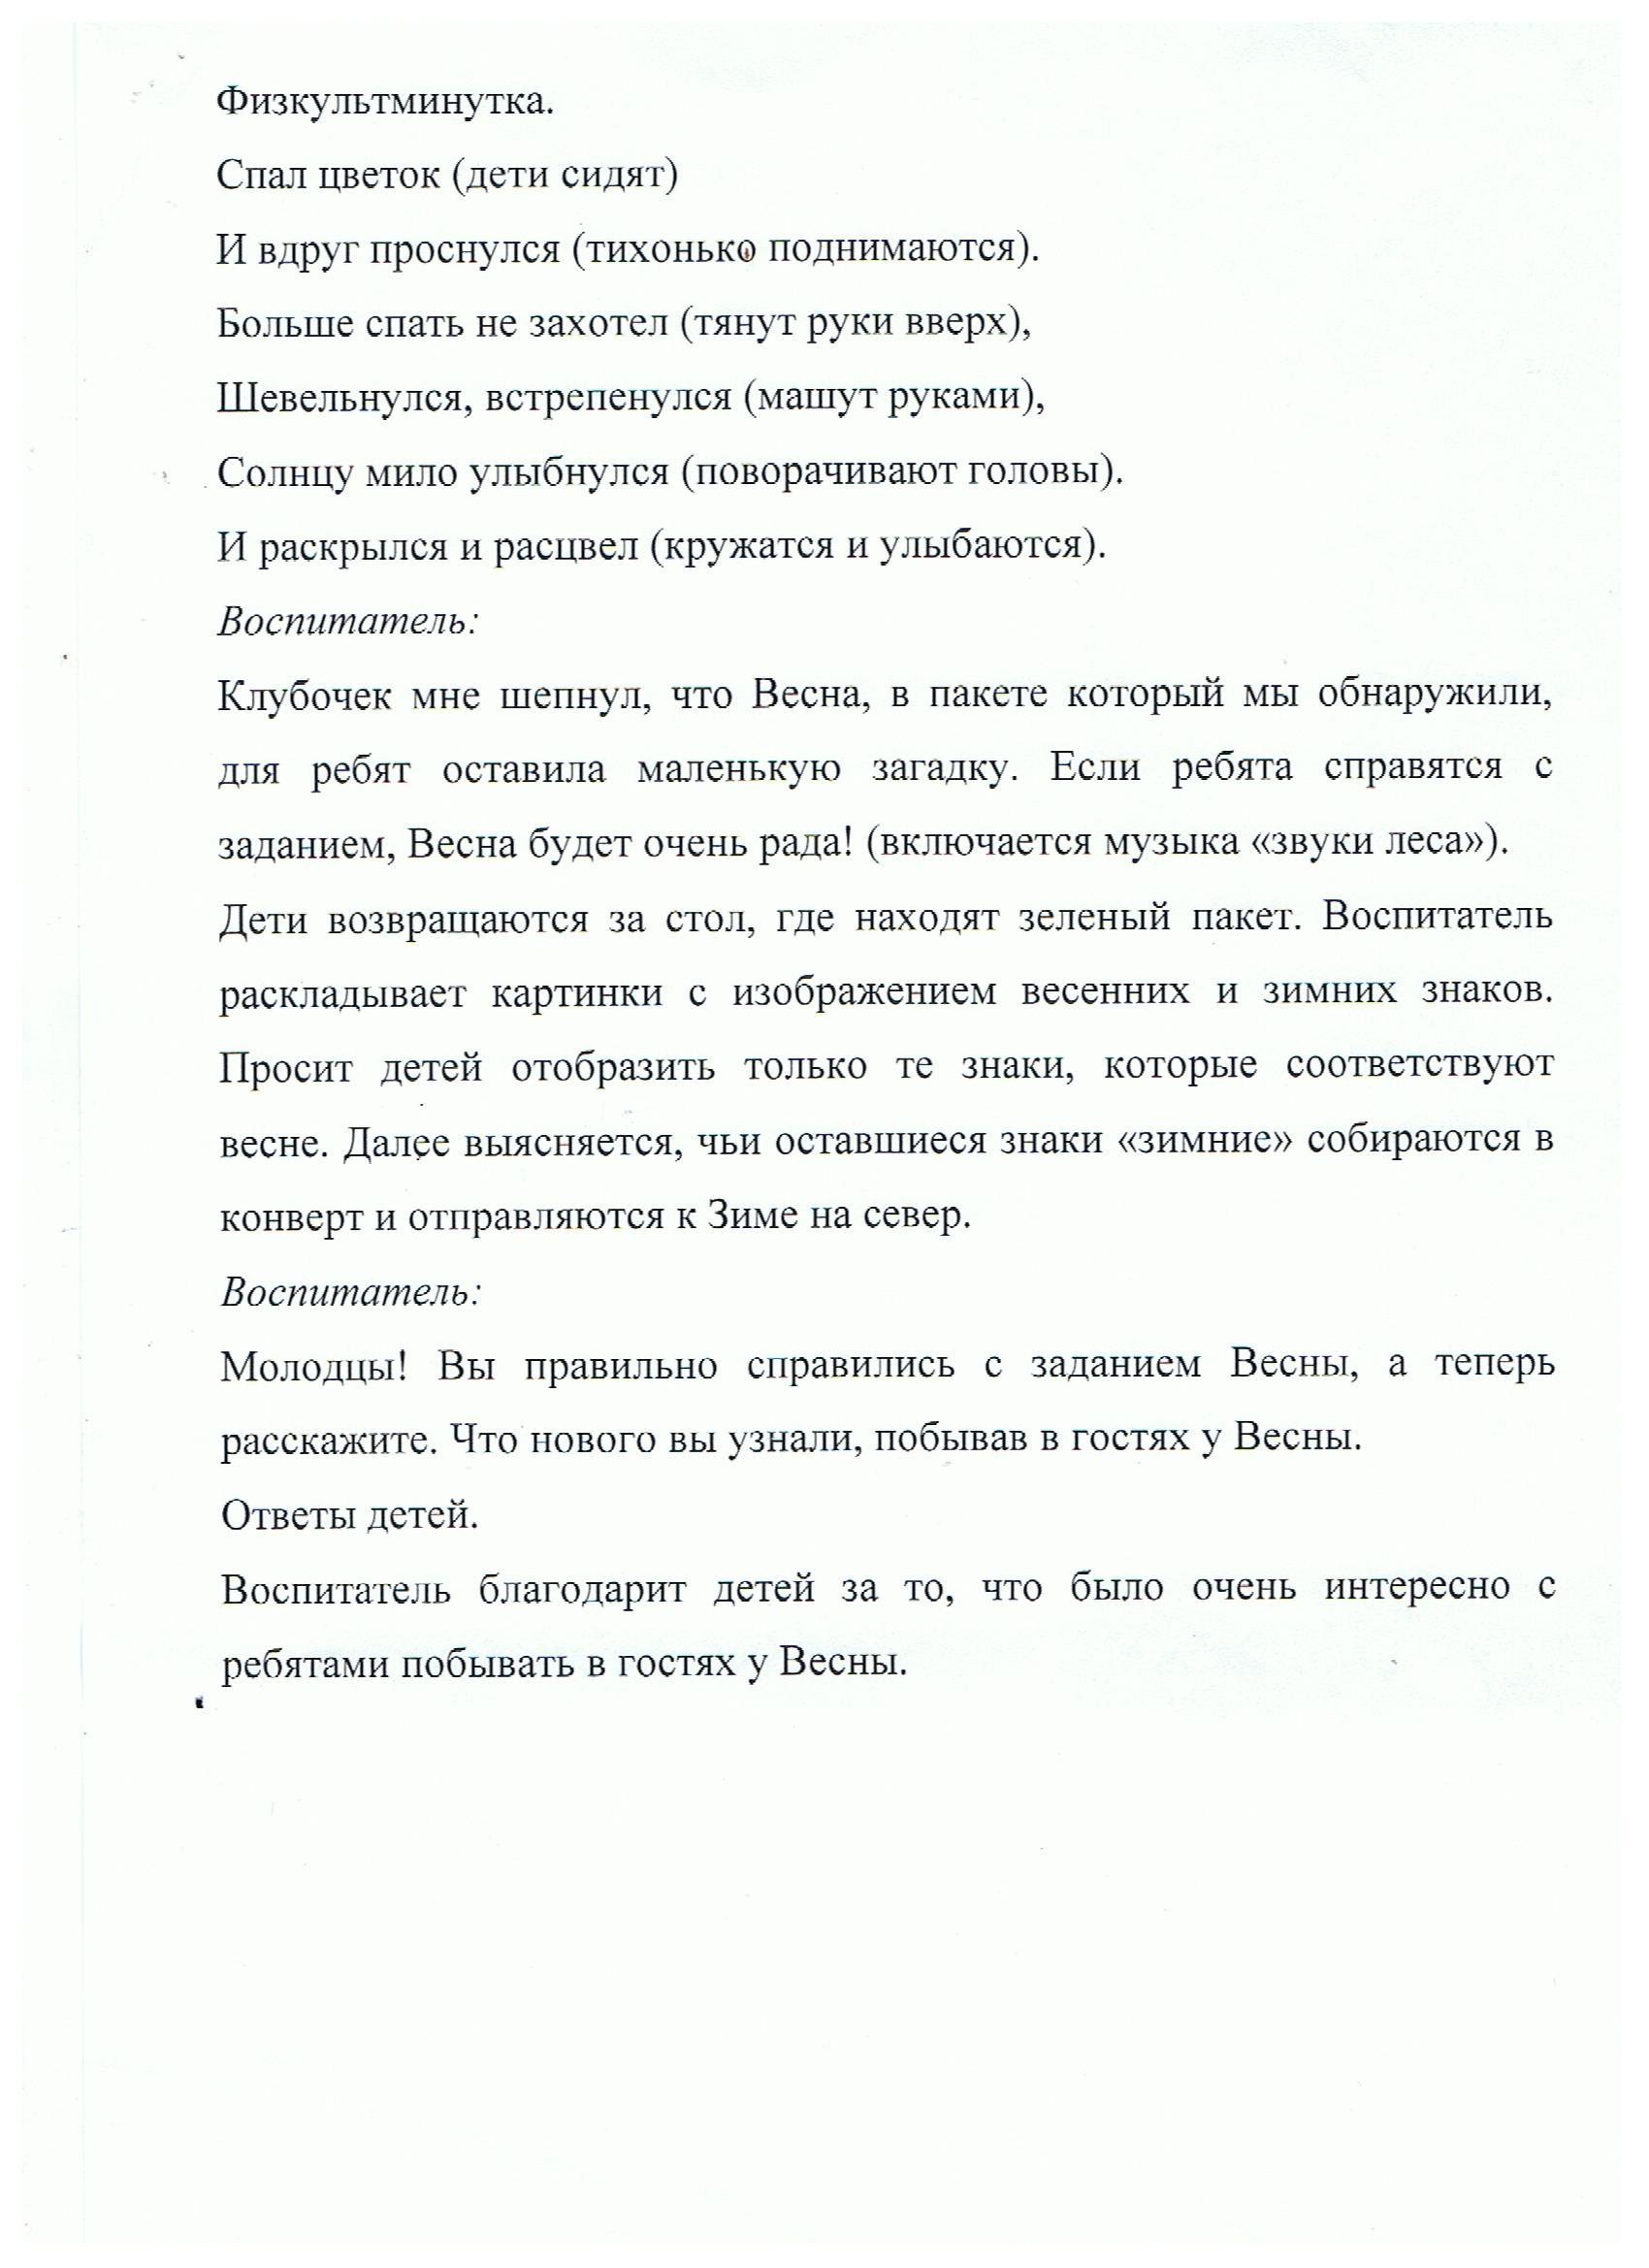 C:\Users\user\Documents\Scanned Documents\бабаева 1\Рисунок (5).jpg